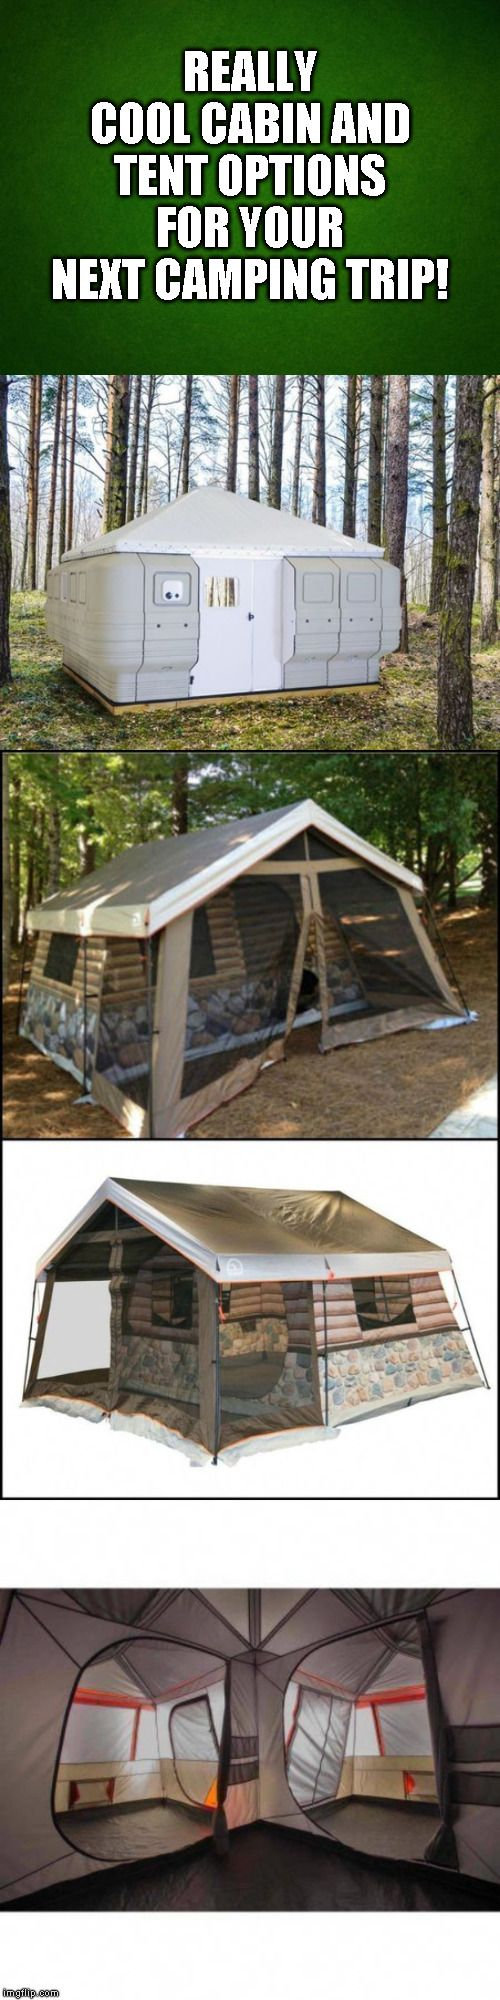 Cool Tent & Camping Options!   Best tents for camping ...